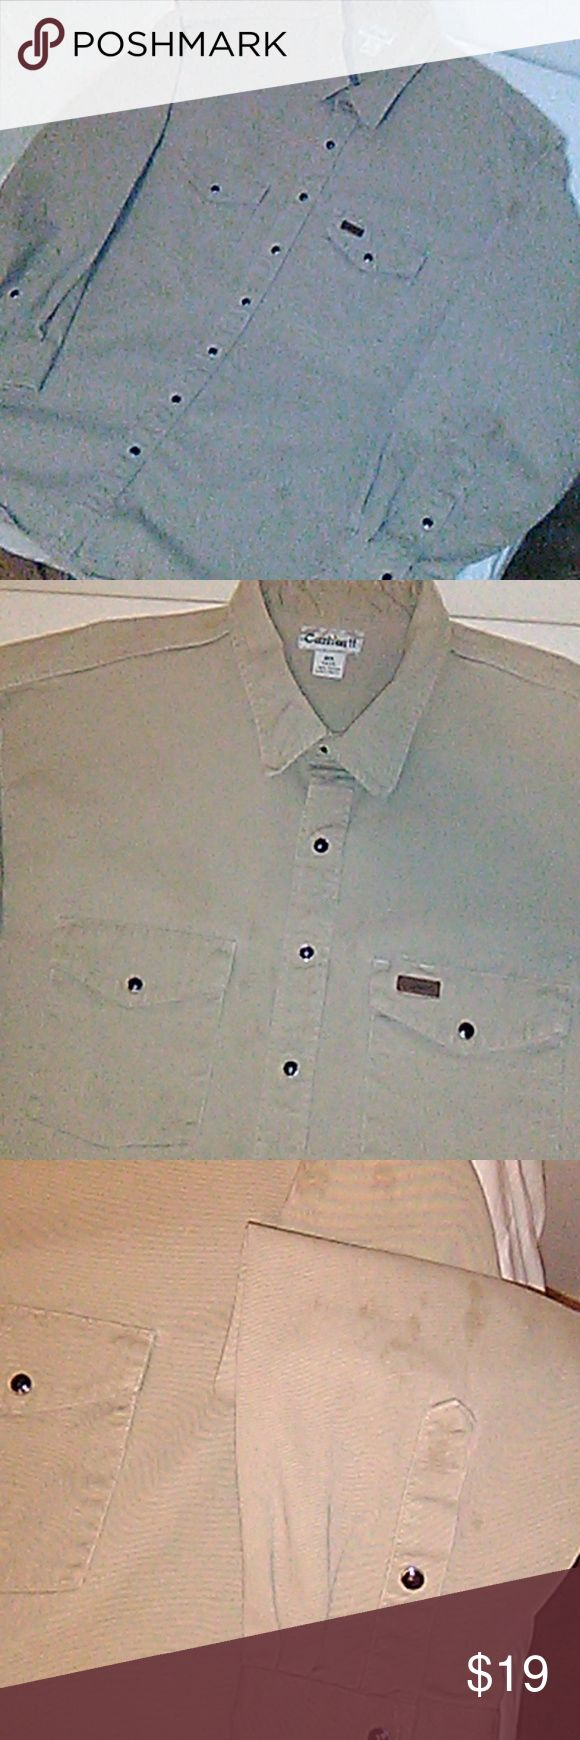 Carhartt work shirt This shirt is big, heavy, tough, prestained with oil, and has a light nick from the chainsaw. So unless you are or know a real man it ain't for you! In great shape really. Carhartt Shirts Casual Button Down Shirts